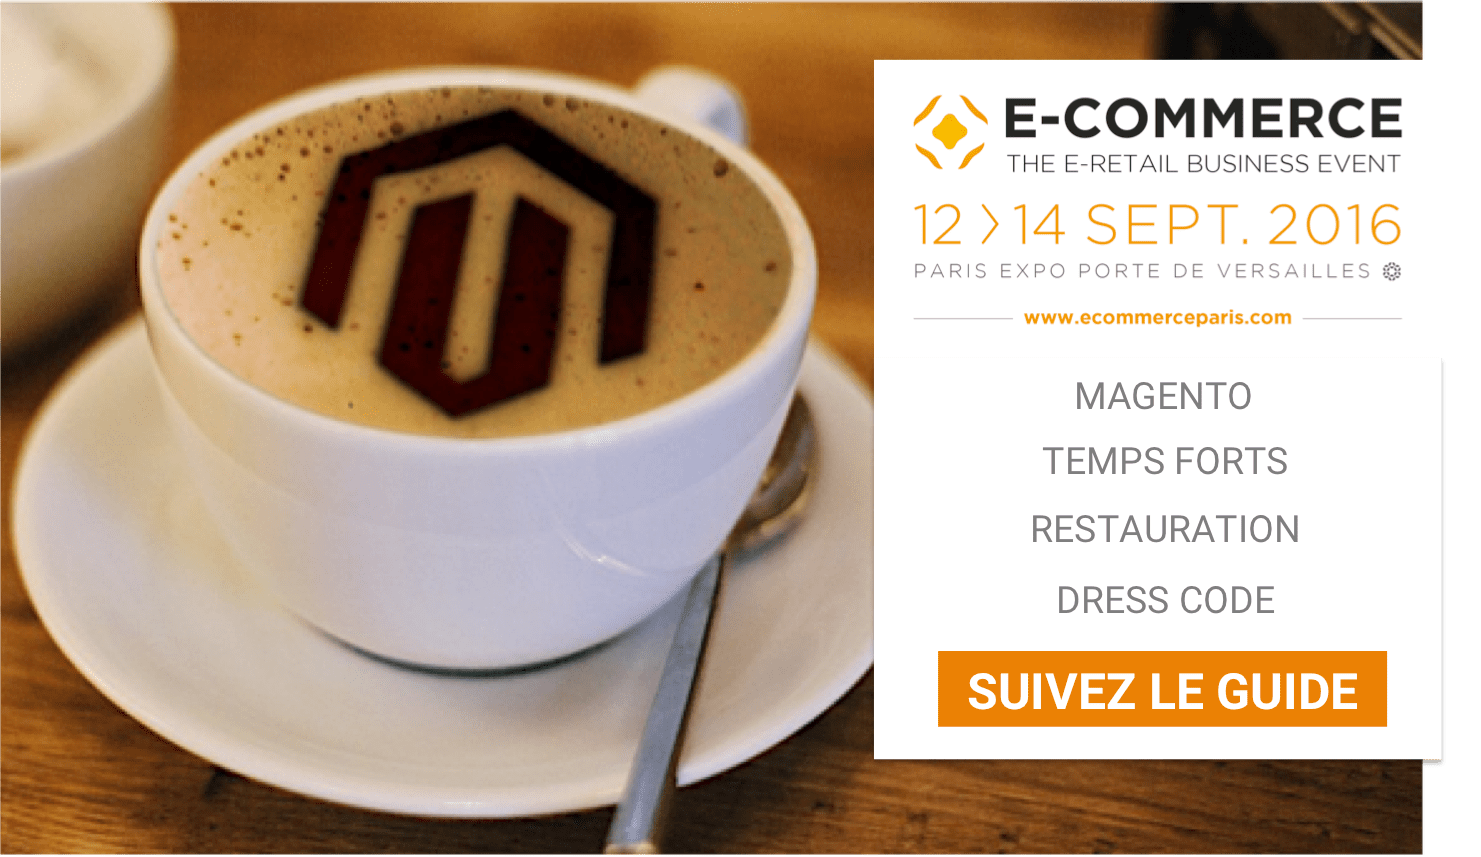 Salon E Commerce 2016 Le Guide Magento Du Salon E Commerce Paris Porte De Versailles 12